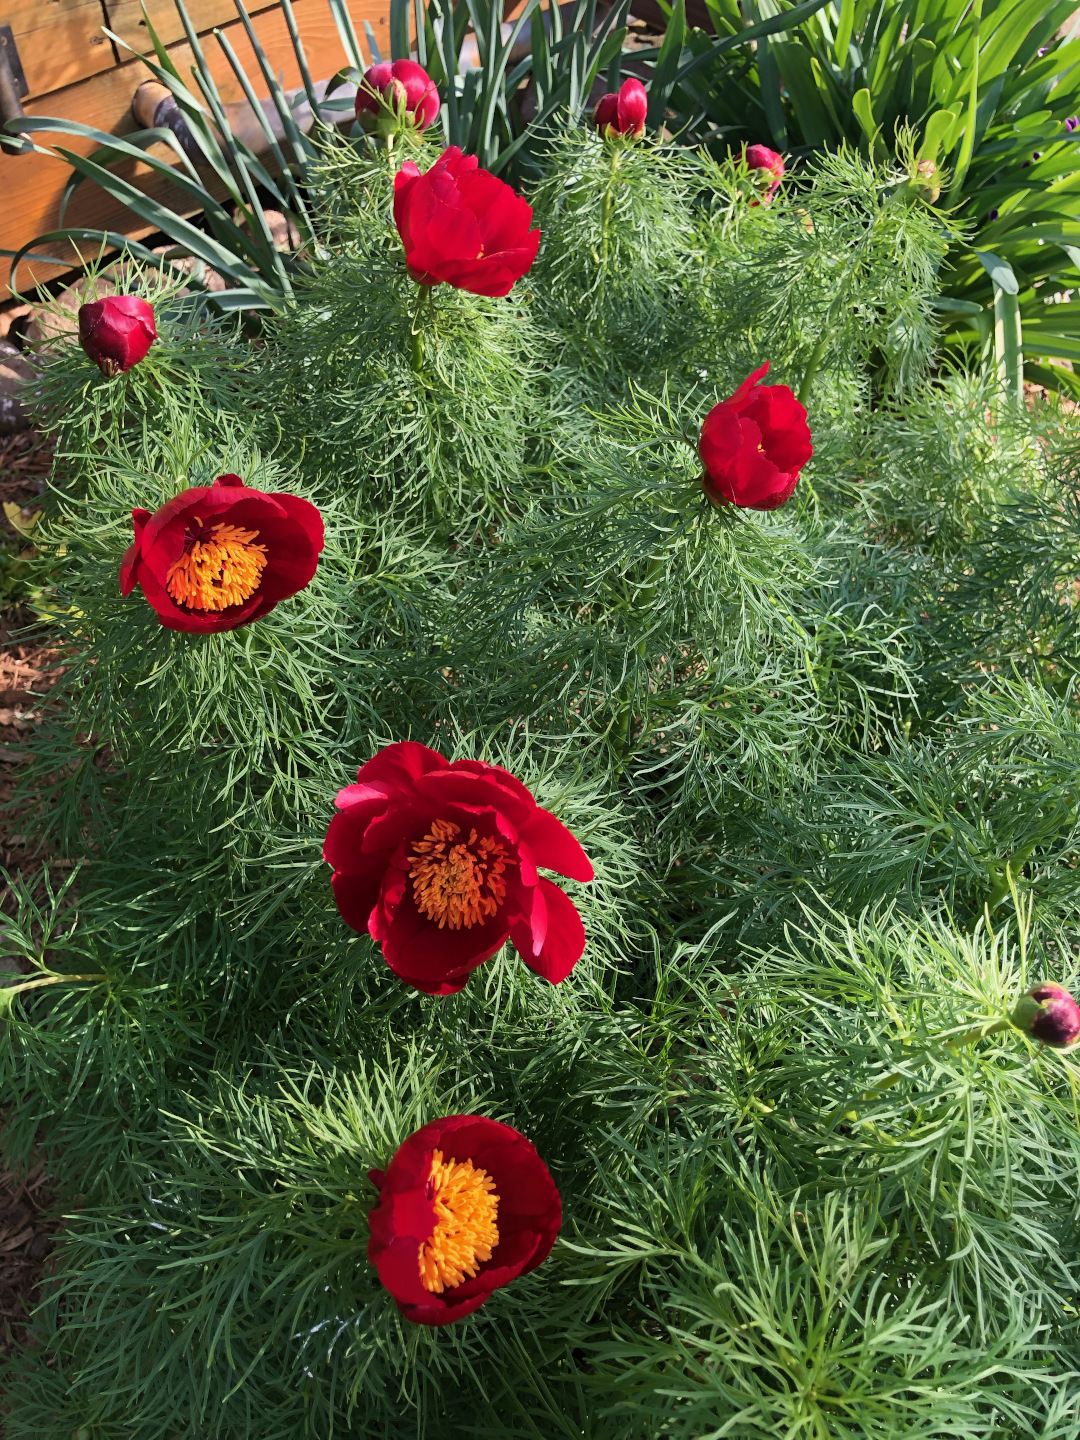 Bright red peony flowers over a mass of fern-like leaves